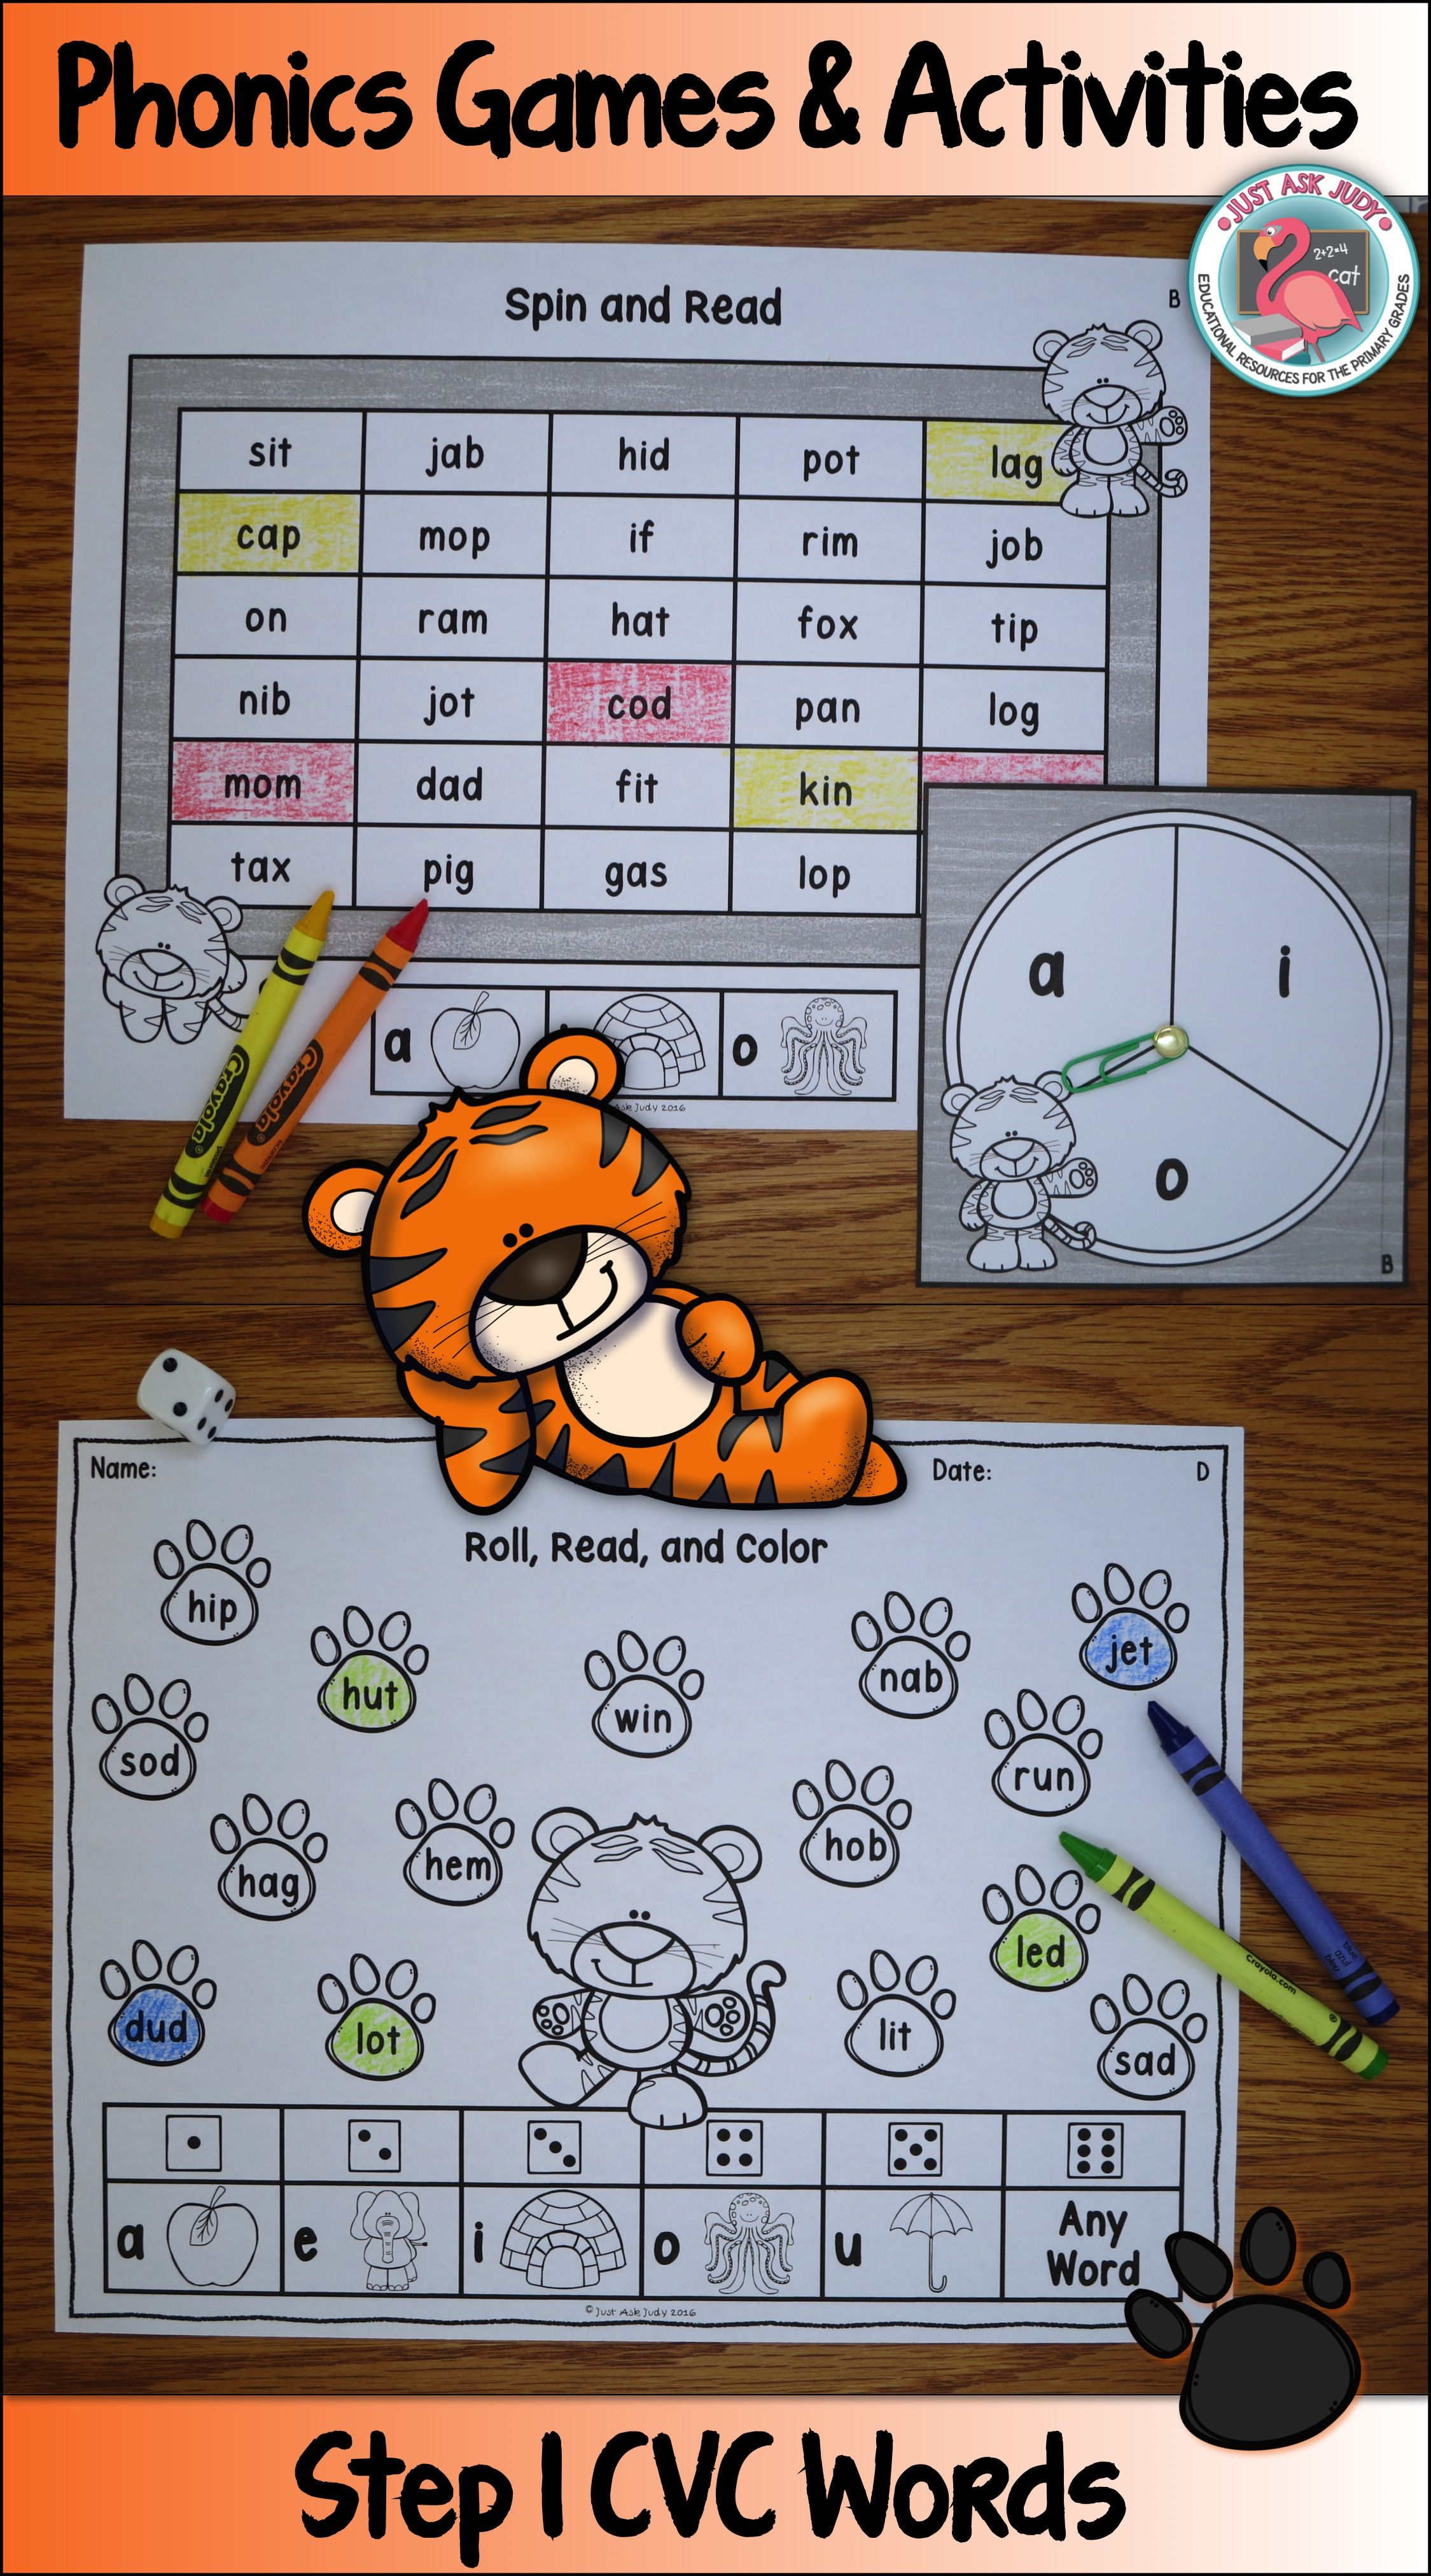 Phonics Games And Activities With Cvc Words